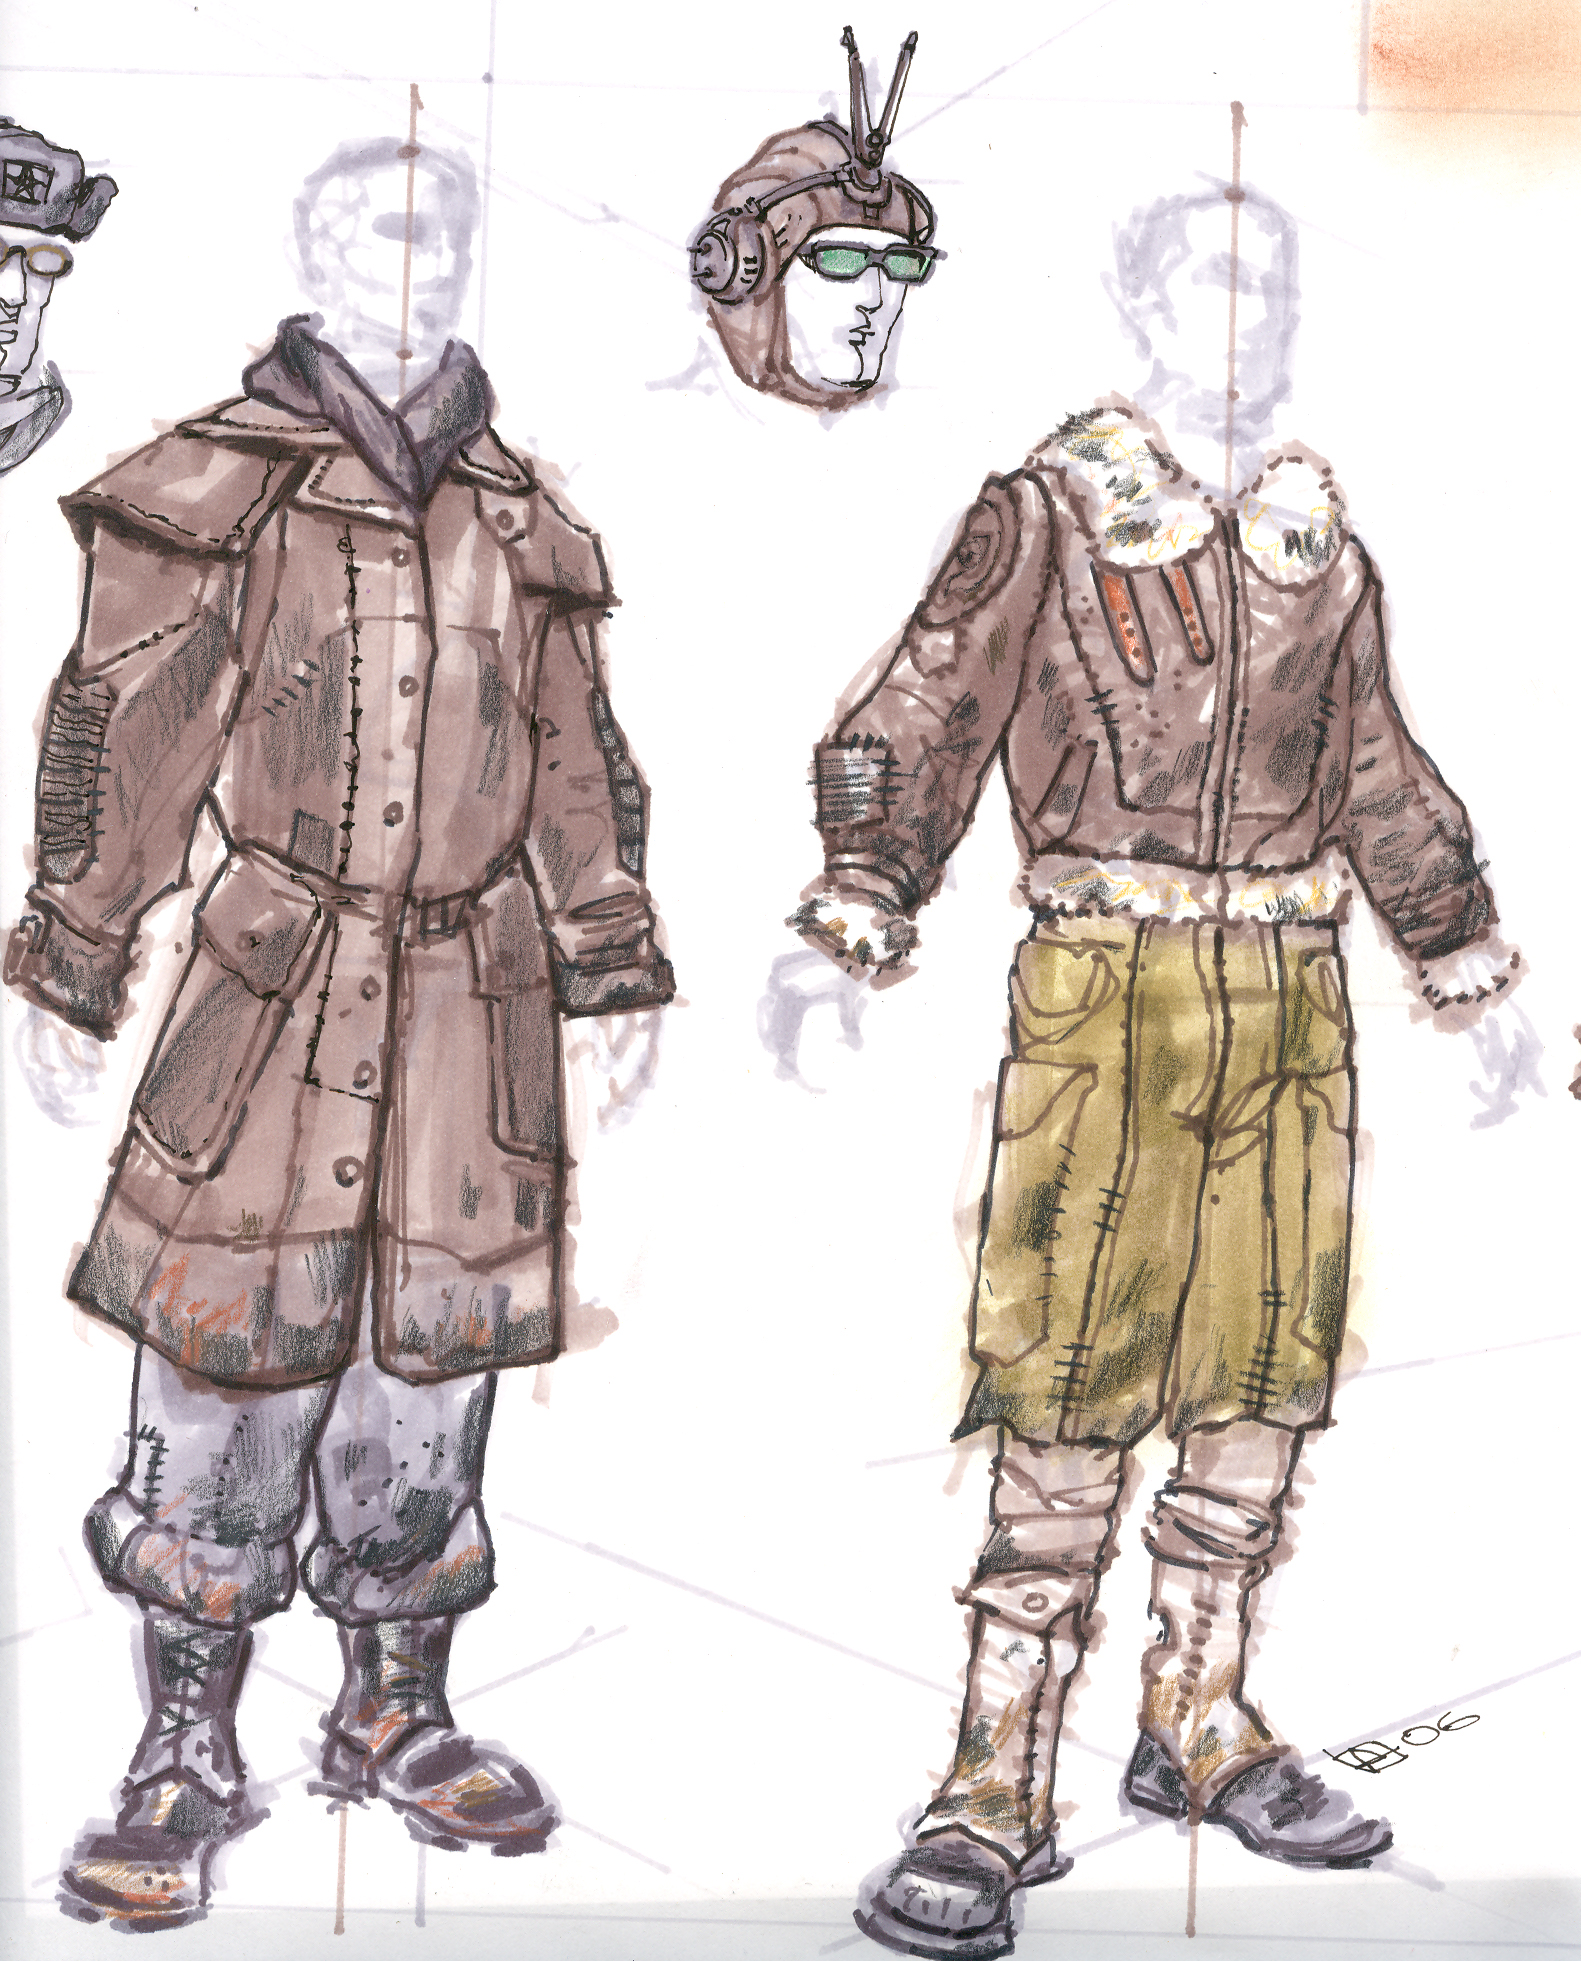 Roving trader outfit CA